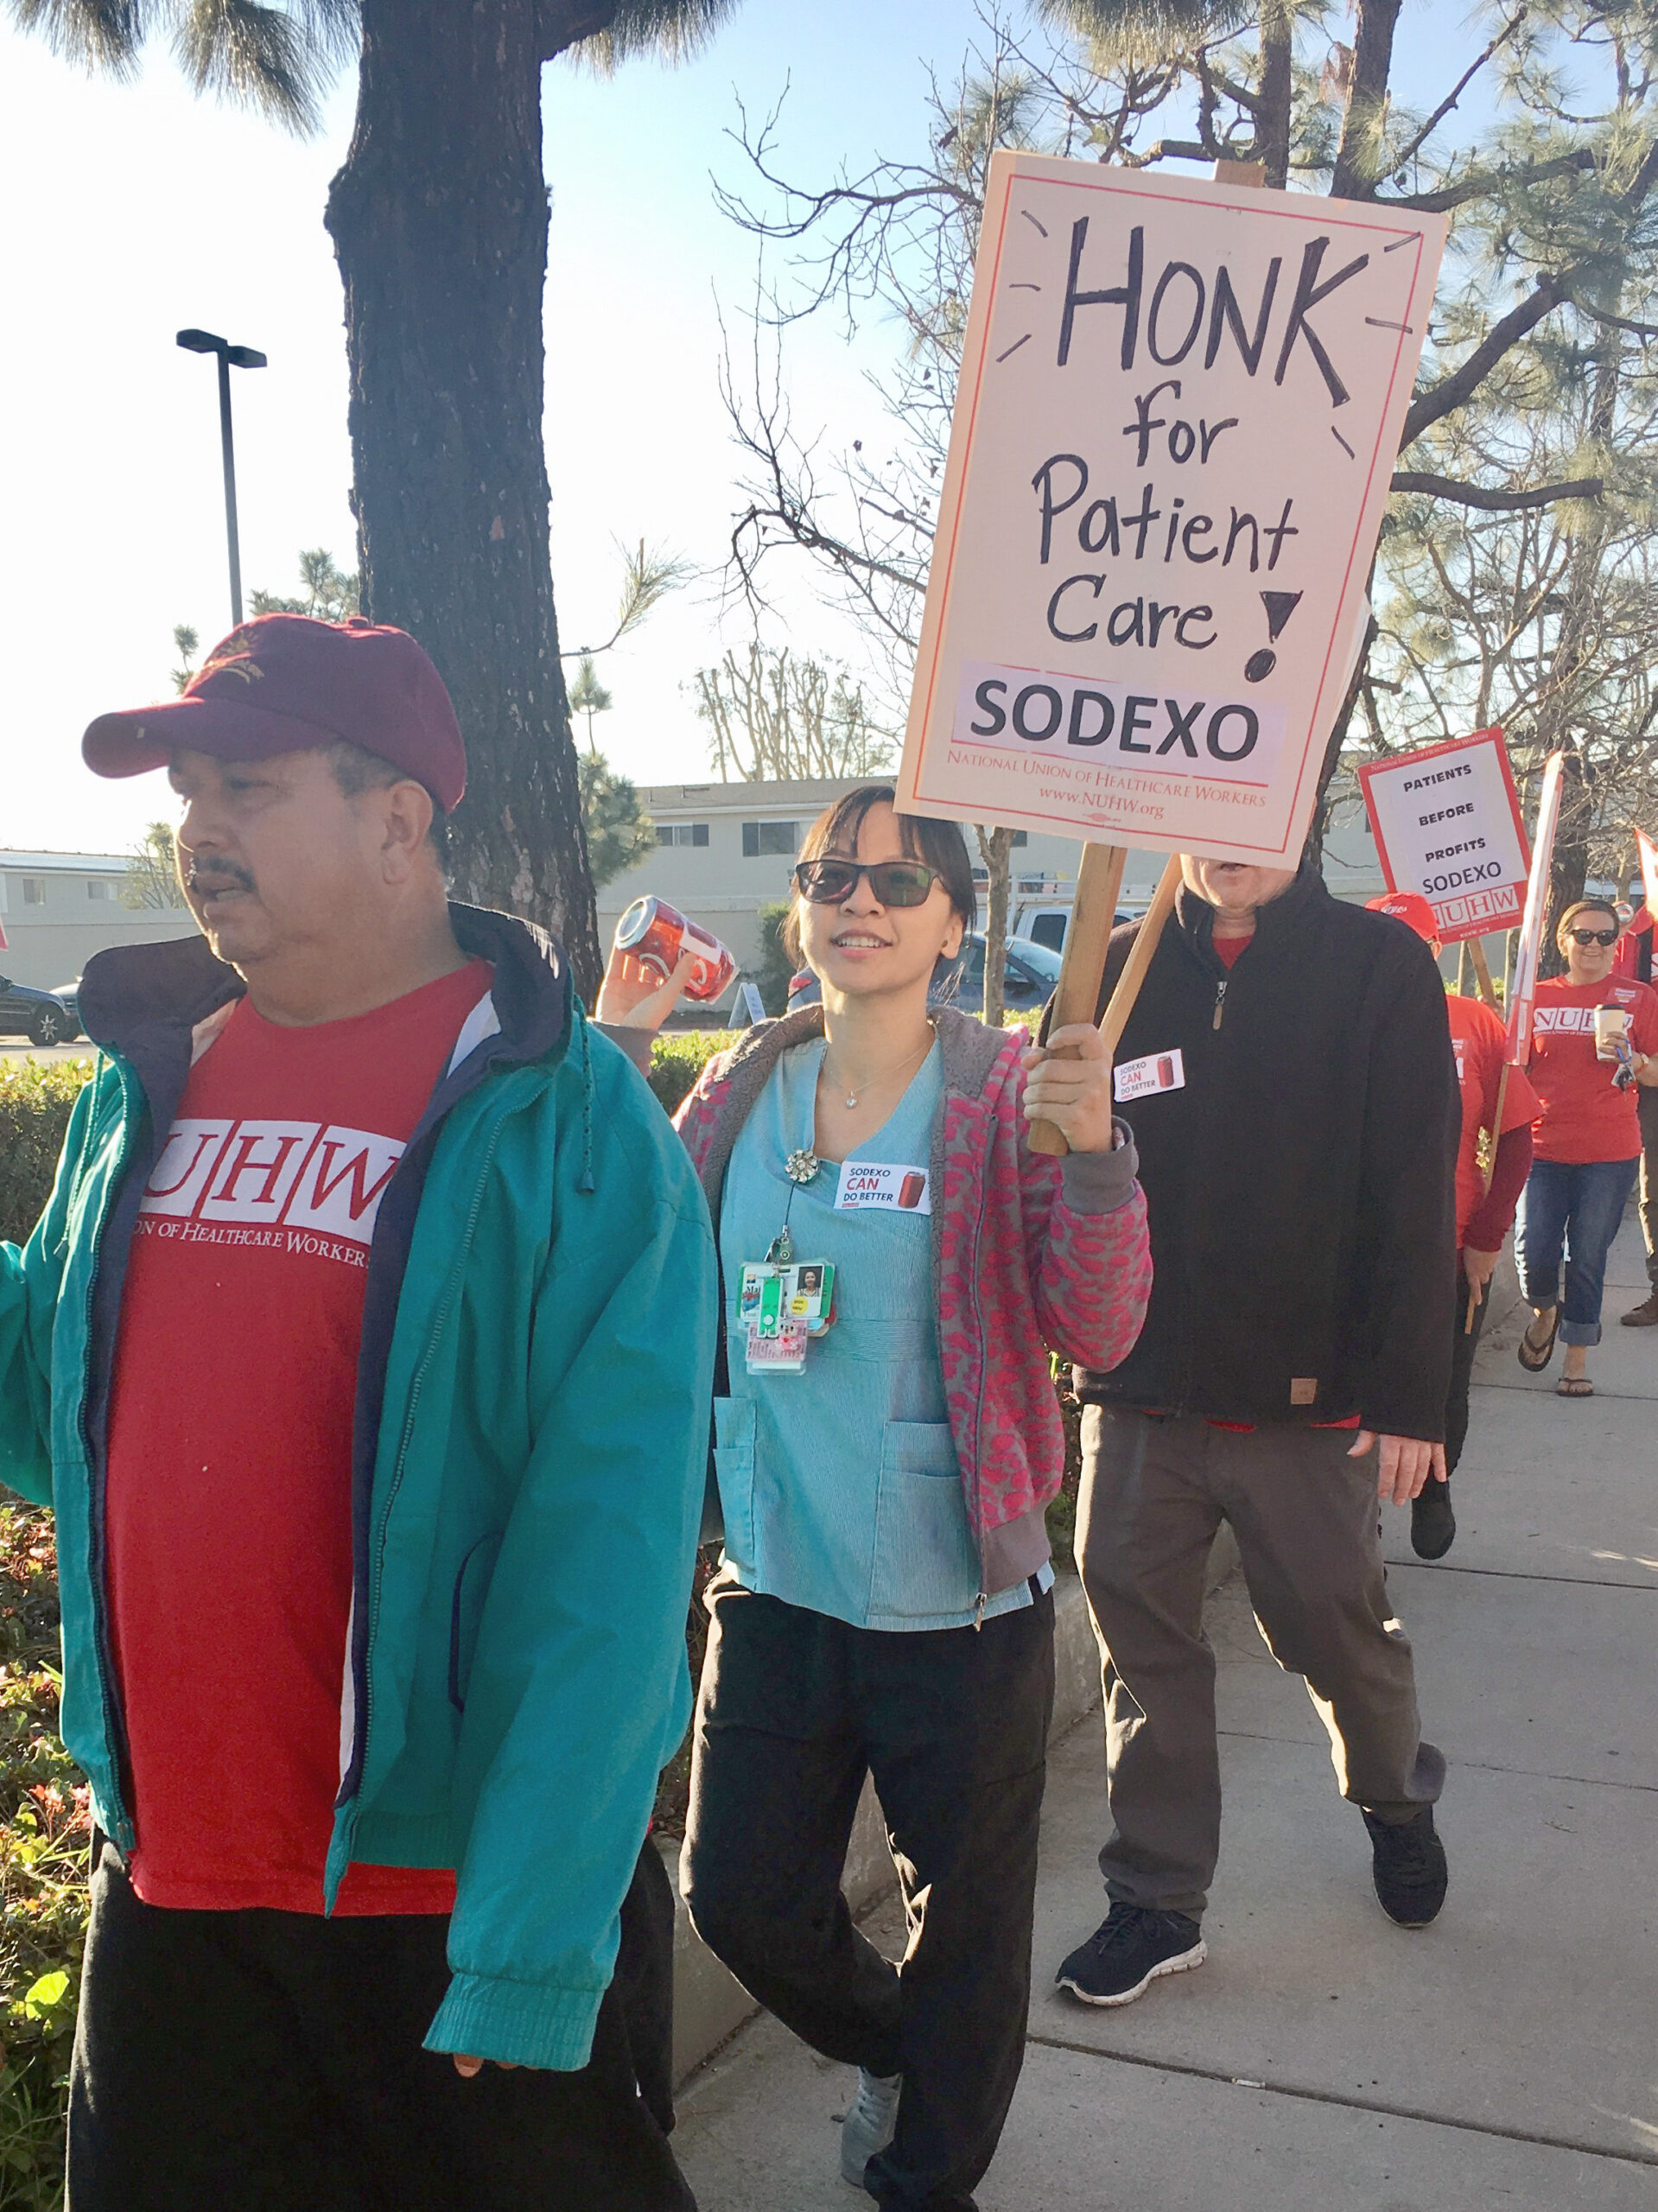 20180201 Fountain Valley Sodexo strike 10